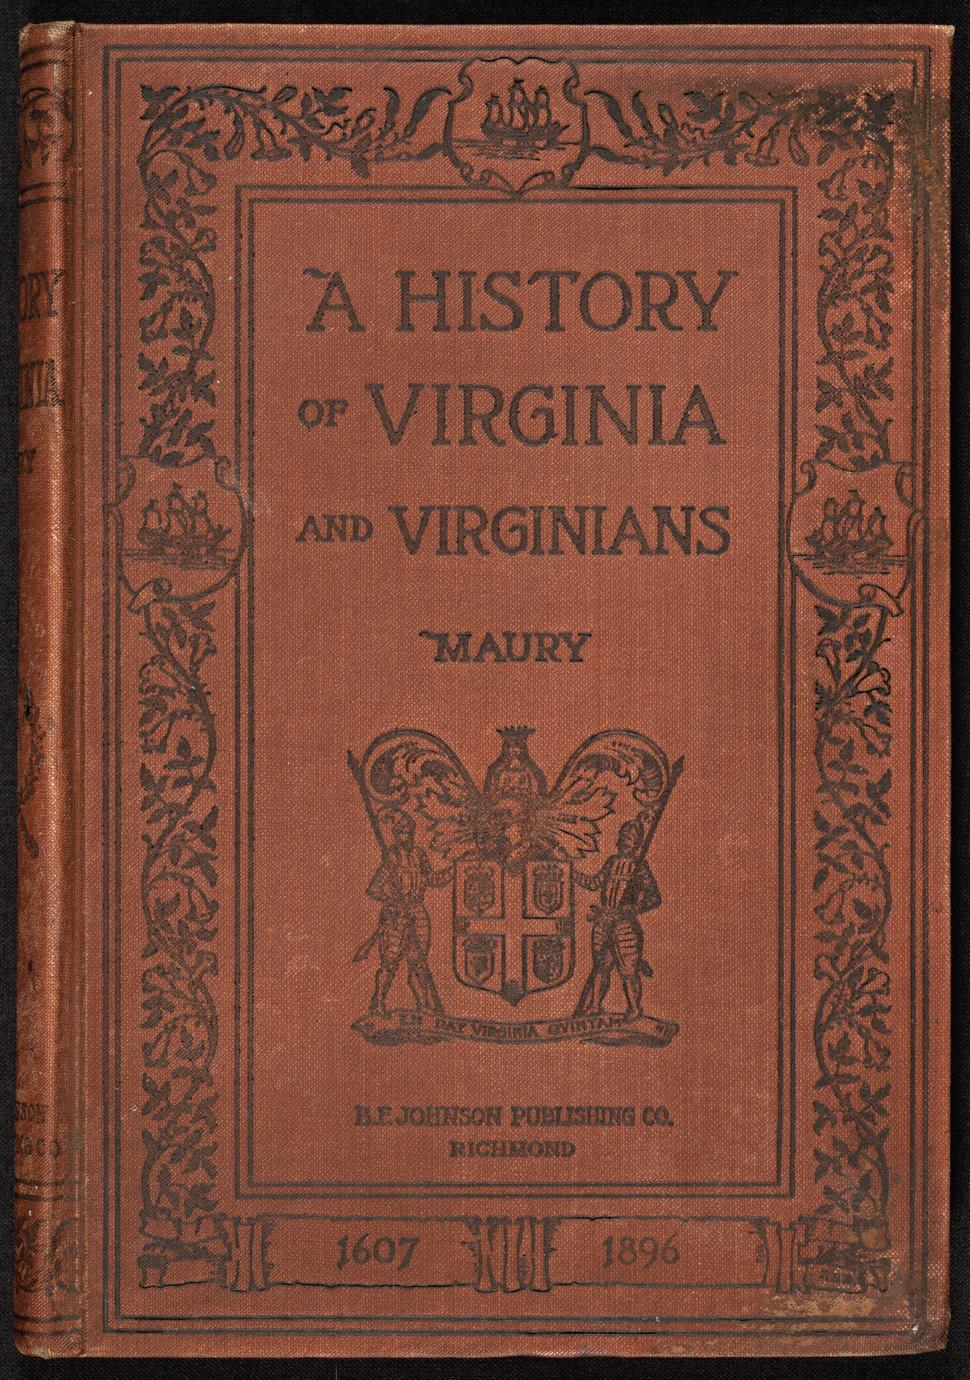 A young people's history of Virginia and Virginians (1 of 3)